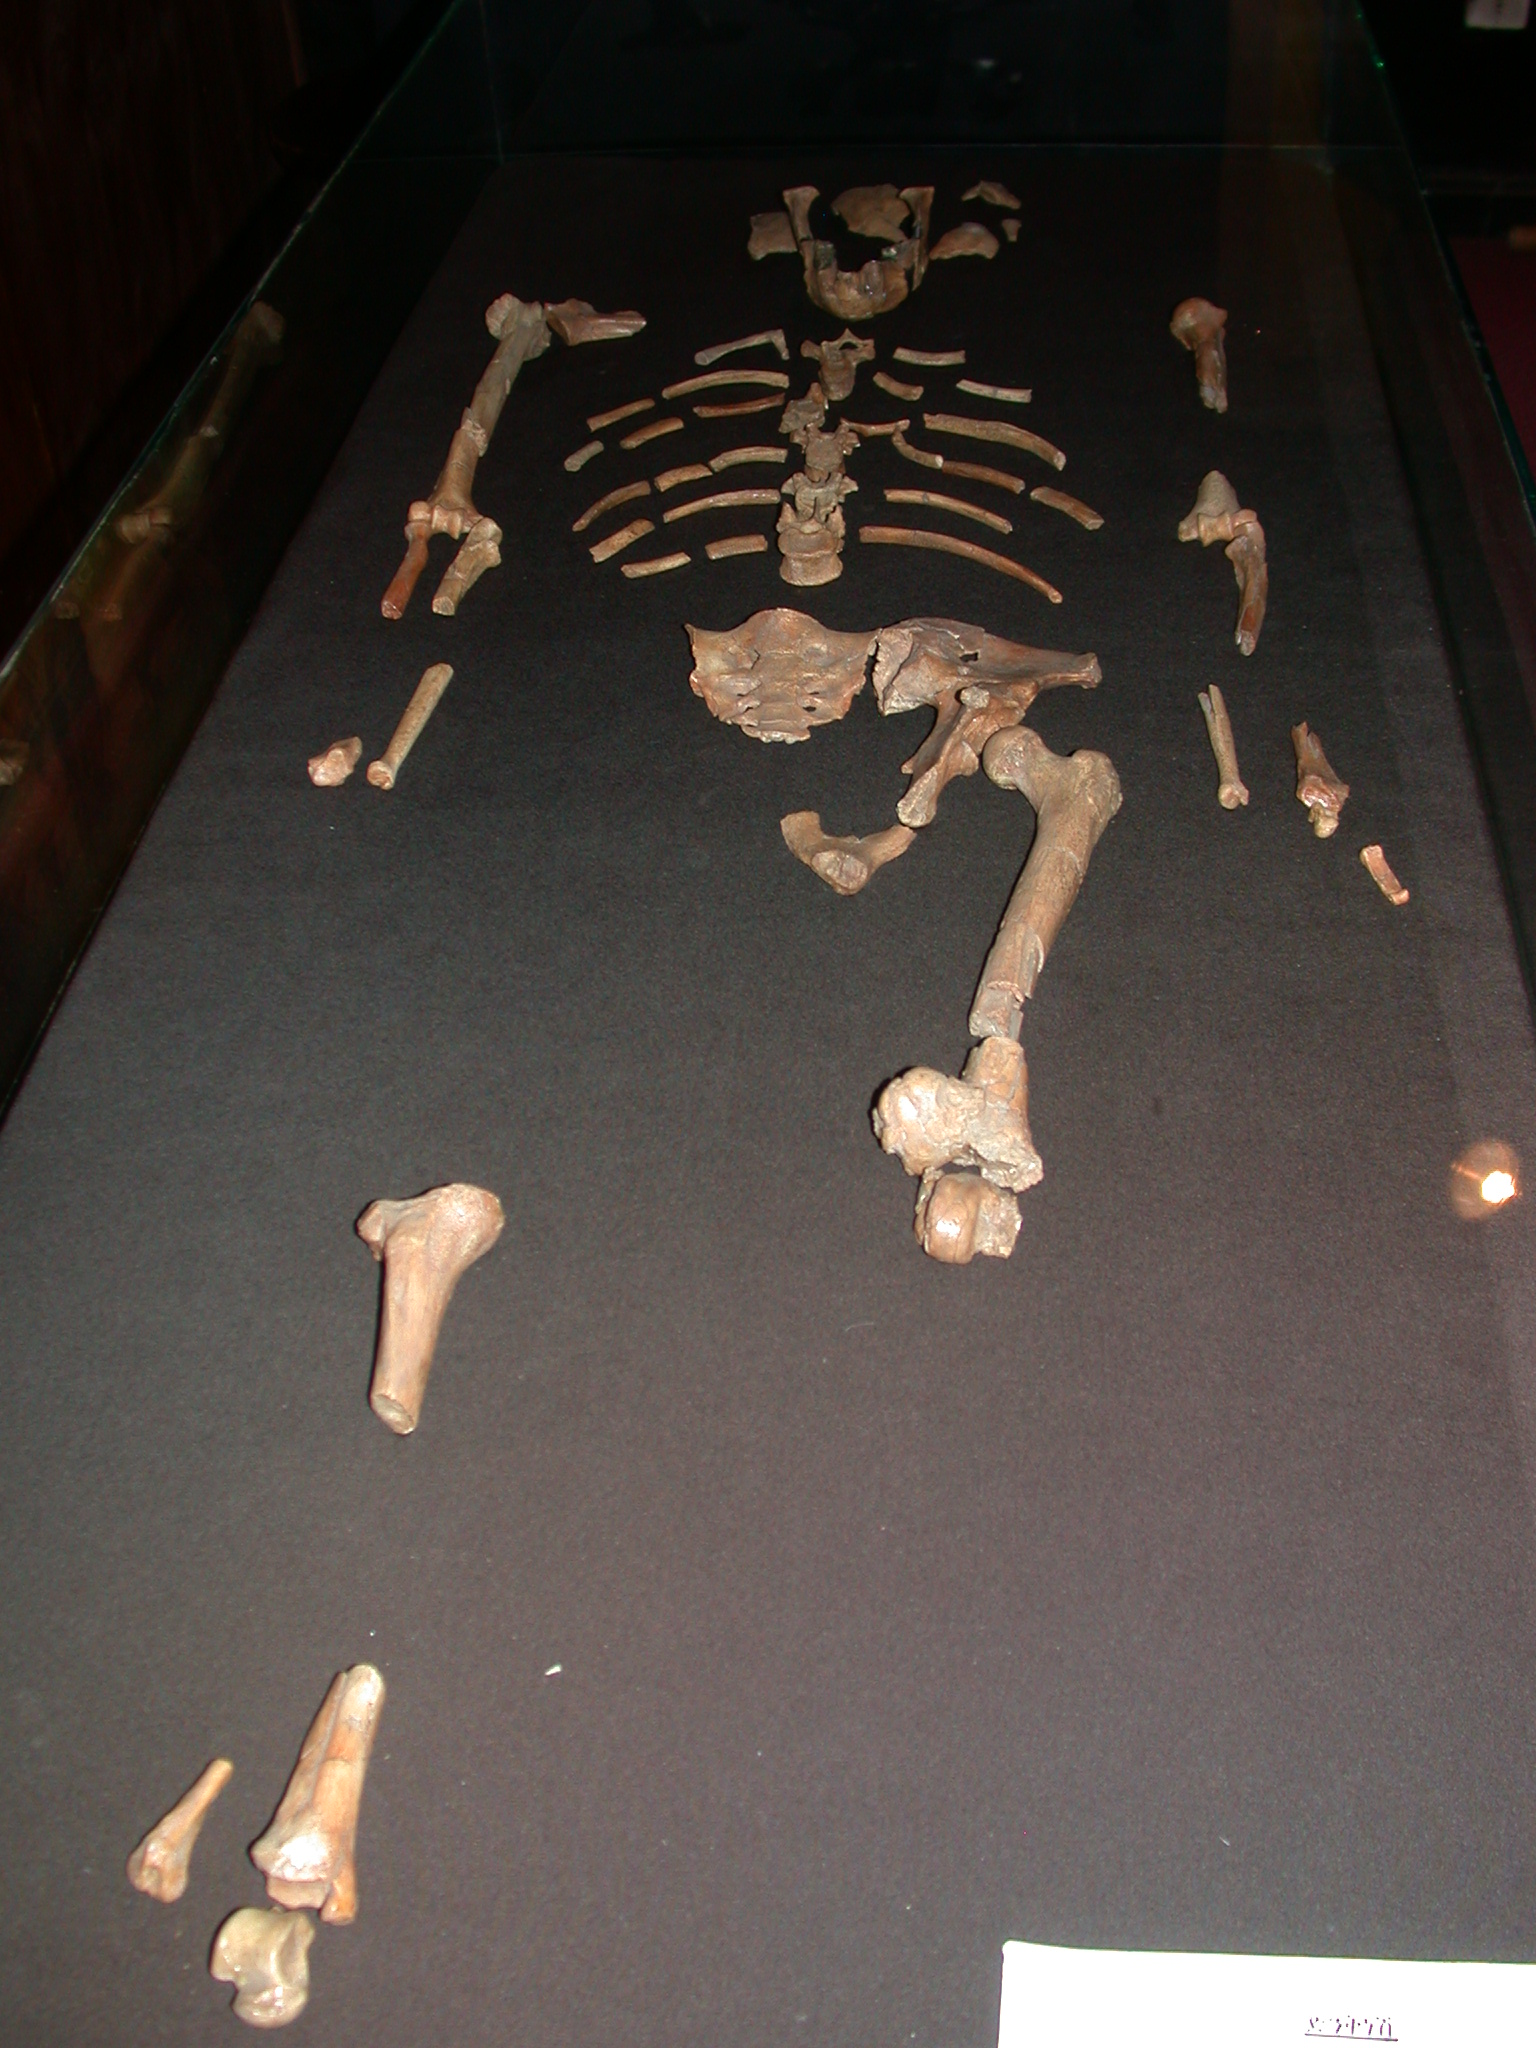 Replica of Fossil Bones of Lucy at National Museum in Addis Ababa, Ethiopia